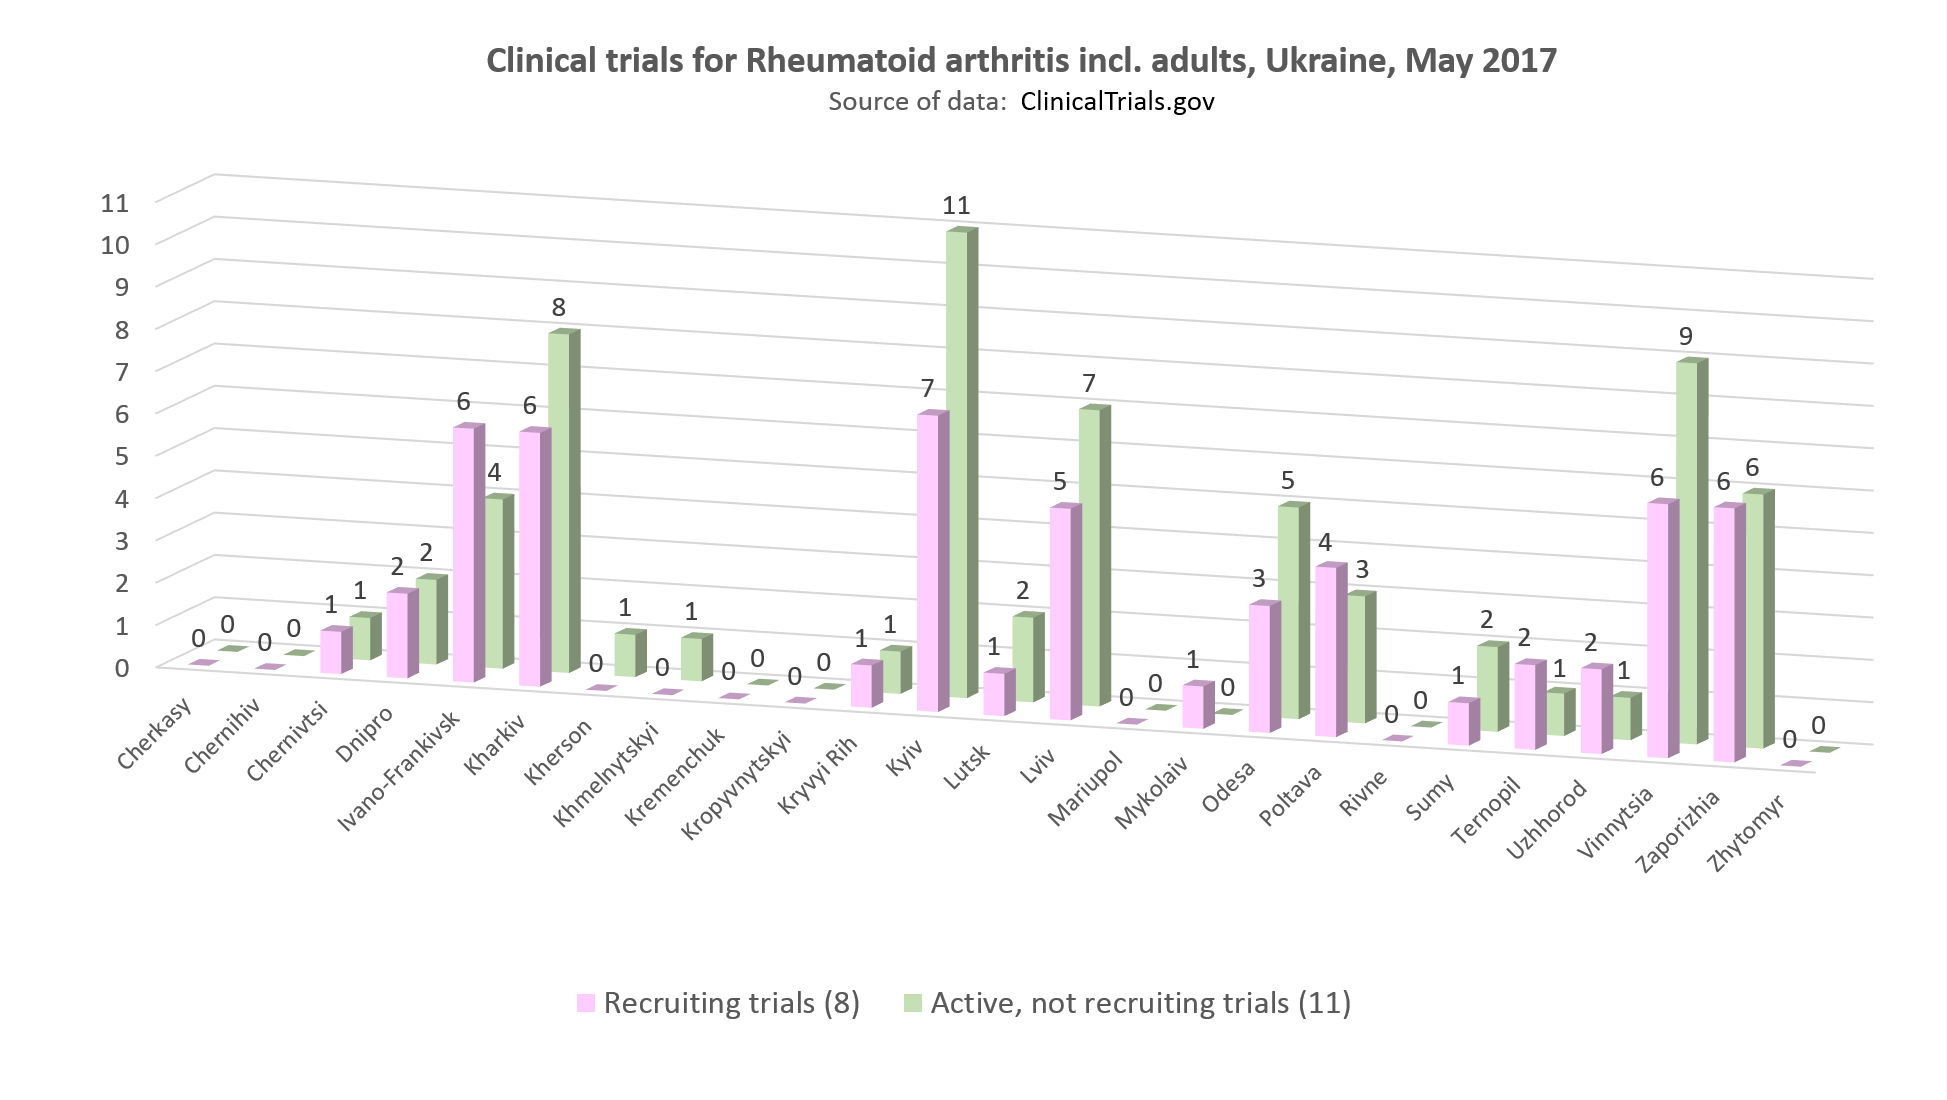 clinical trials for rheumatoid arthritis incl adults in Ukraine